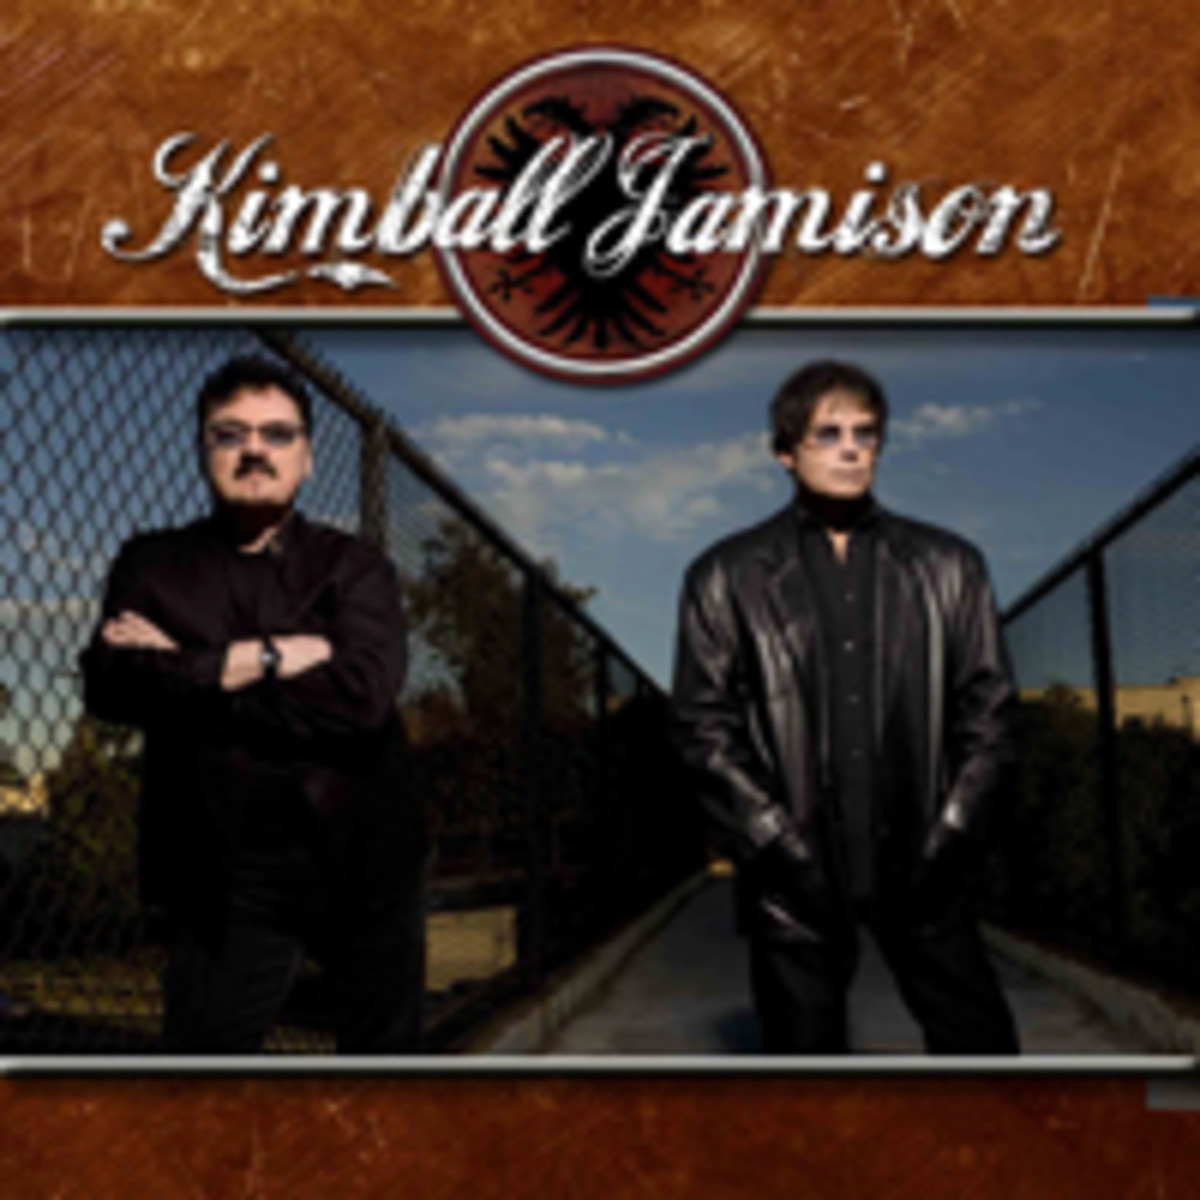 Kimball Jamison self-titled album